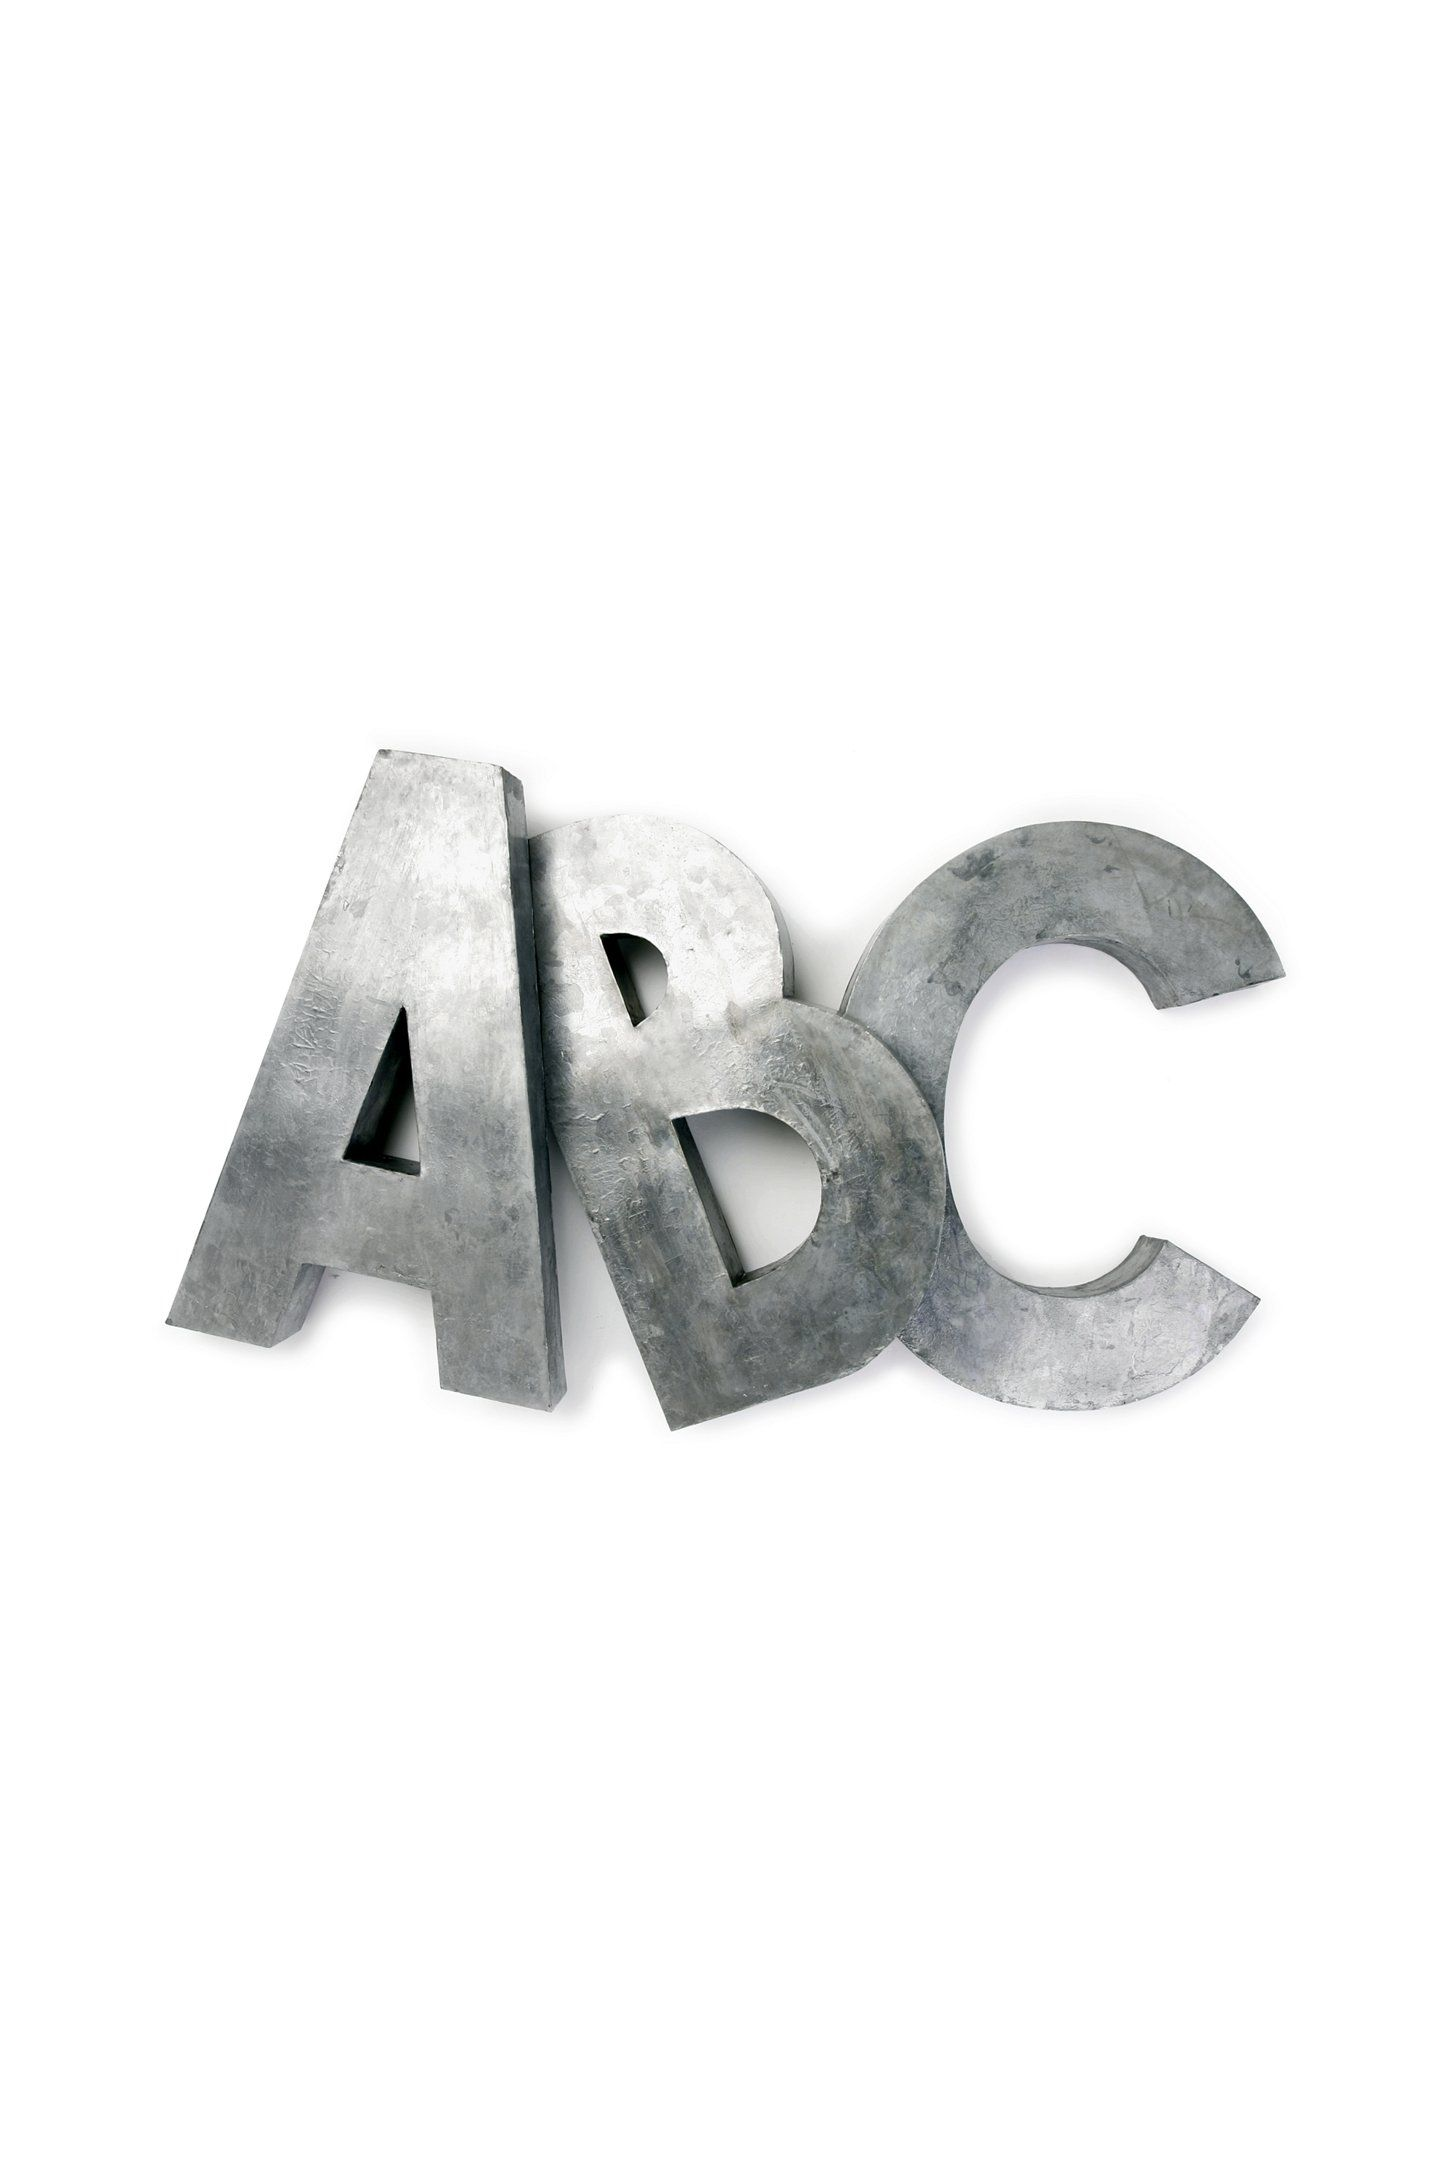 Cheap Metal Letters Oversized Zinc Letters  Study Areas Workspaces And Interiors